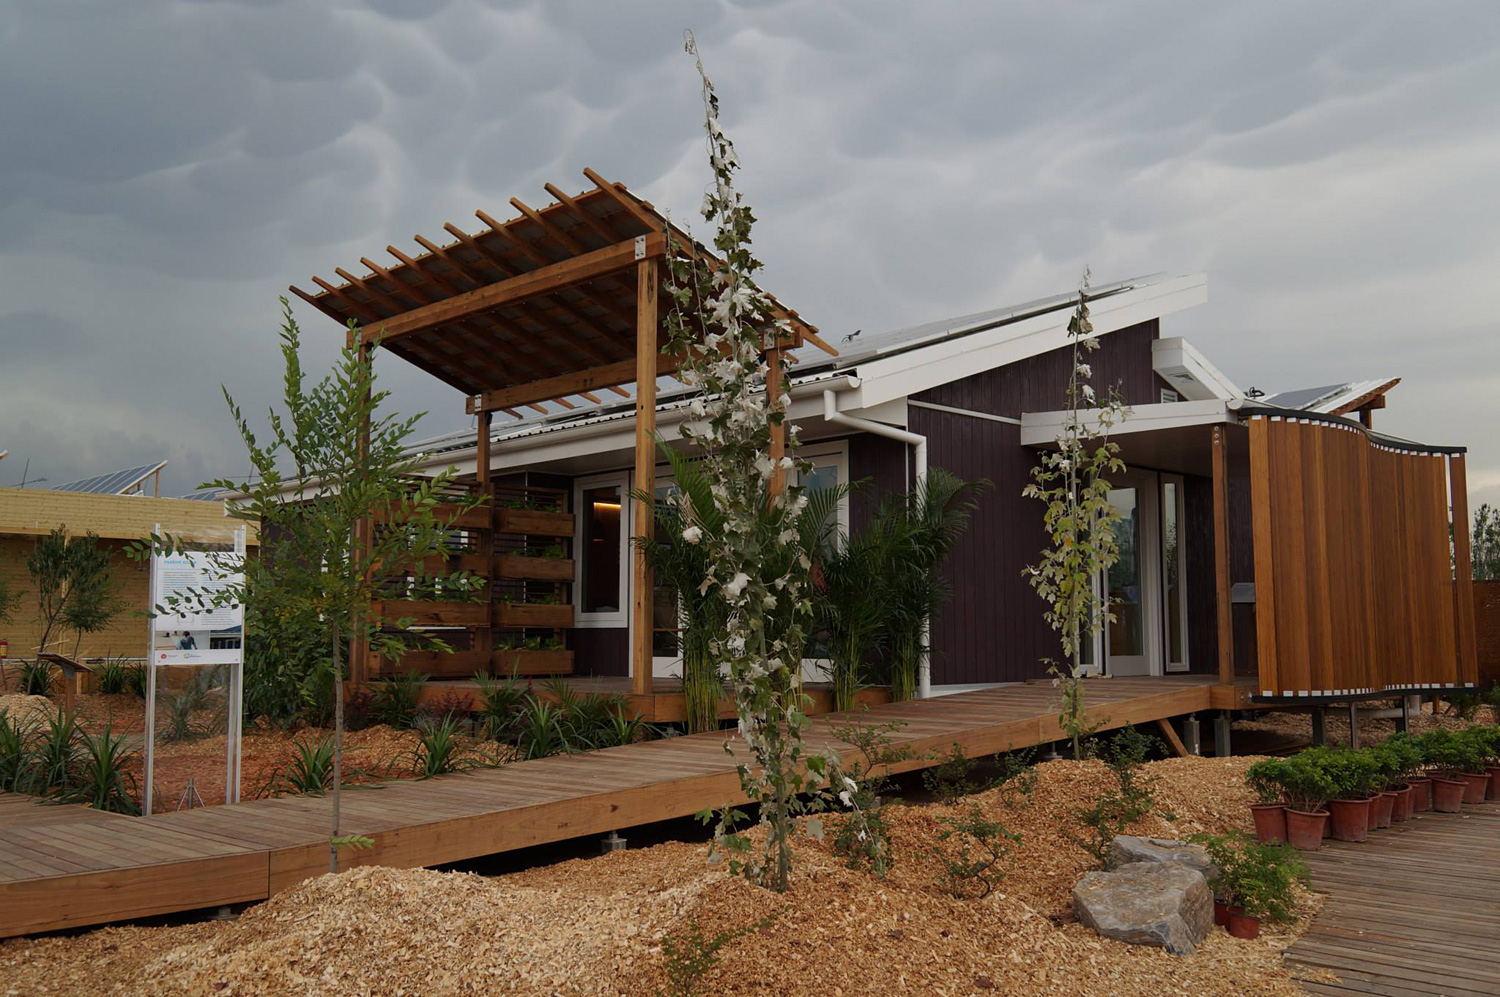 Team UOW Australia wins the 2013 Solar Decathlon China